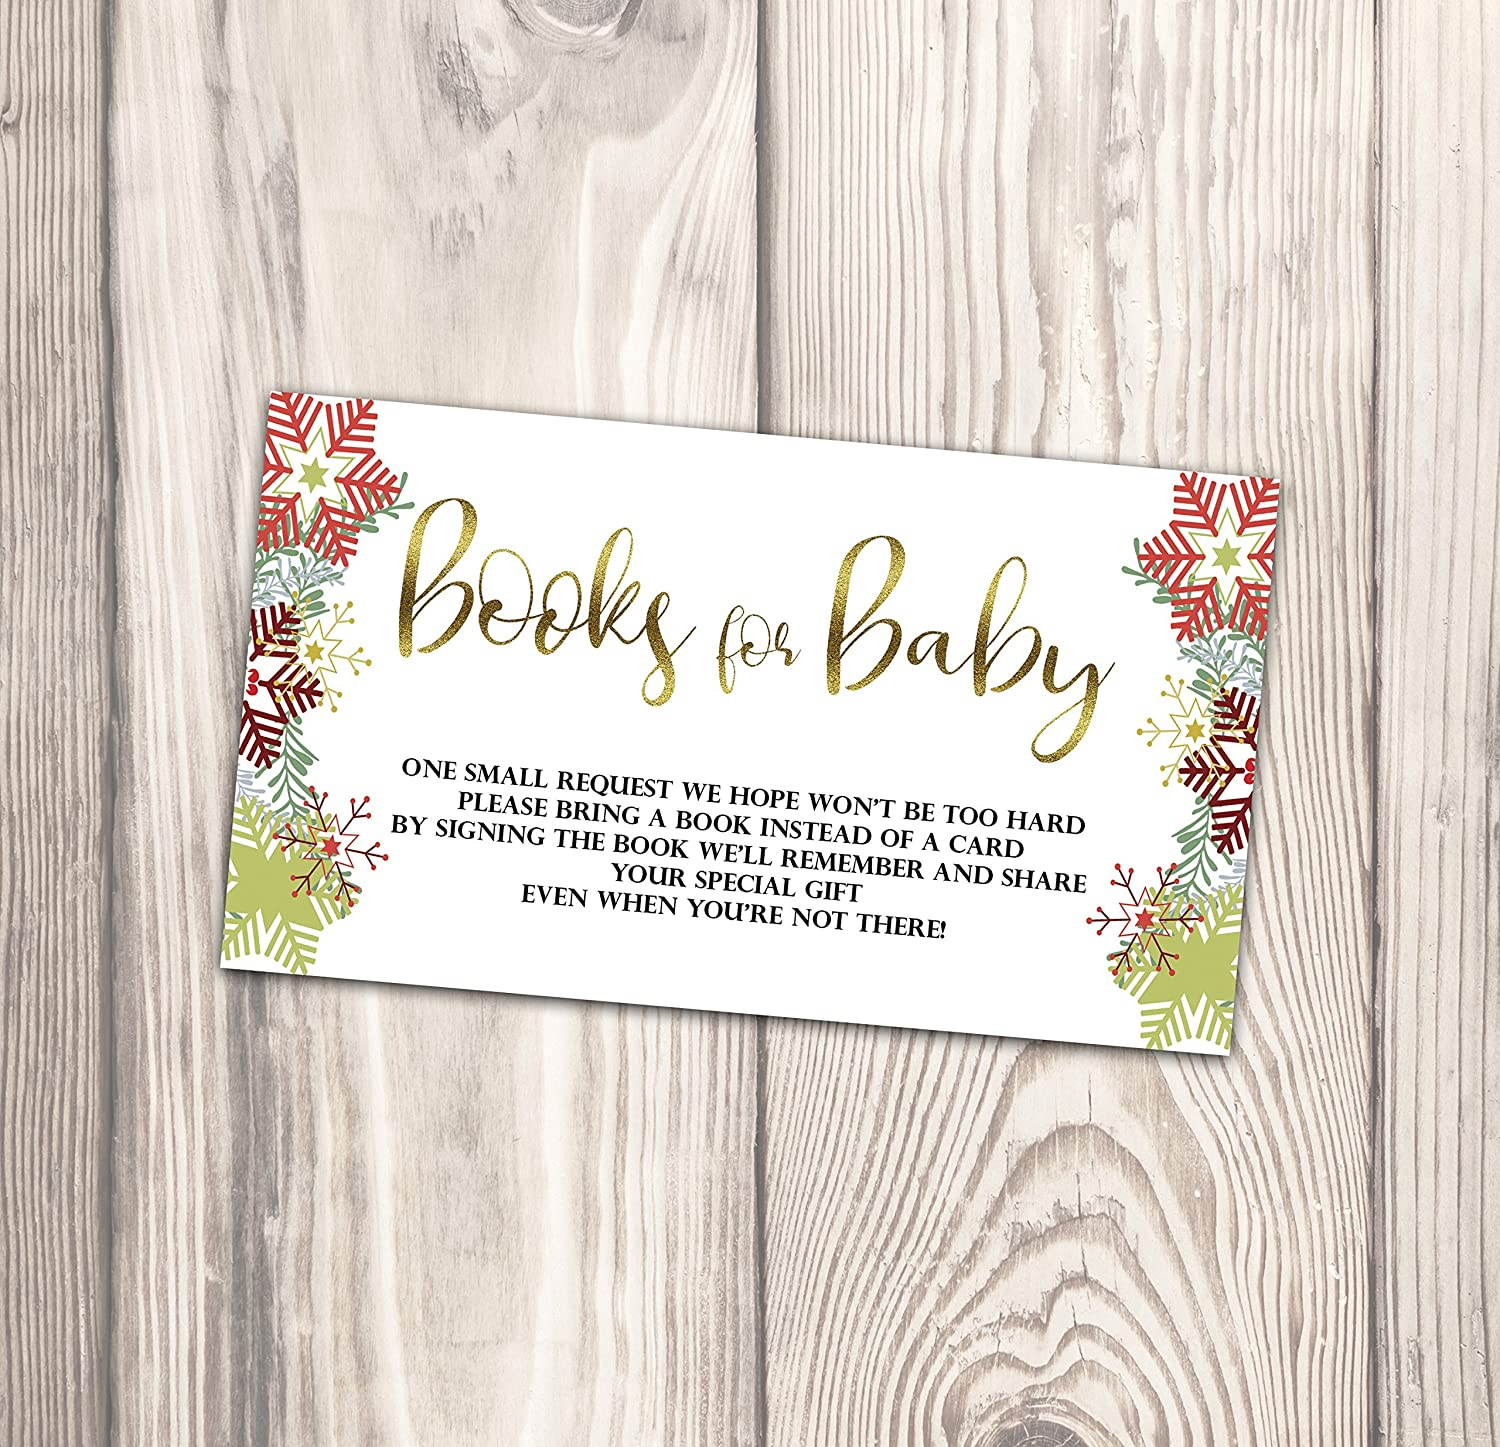 Amazon Com Christmas Baby Shower Book Request Card Snowflake Baby Sprinkle Book Instead Of Card Invitation Insert A Little 3 5 X 2 Inch Handmade